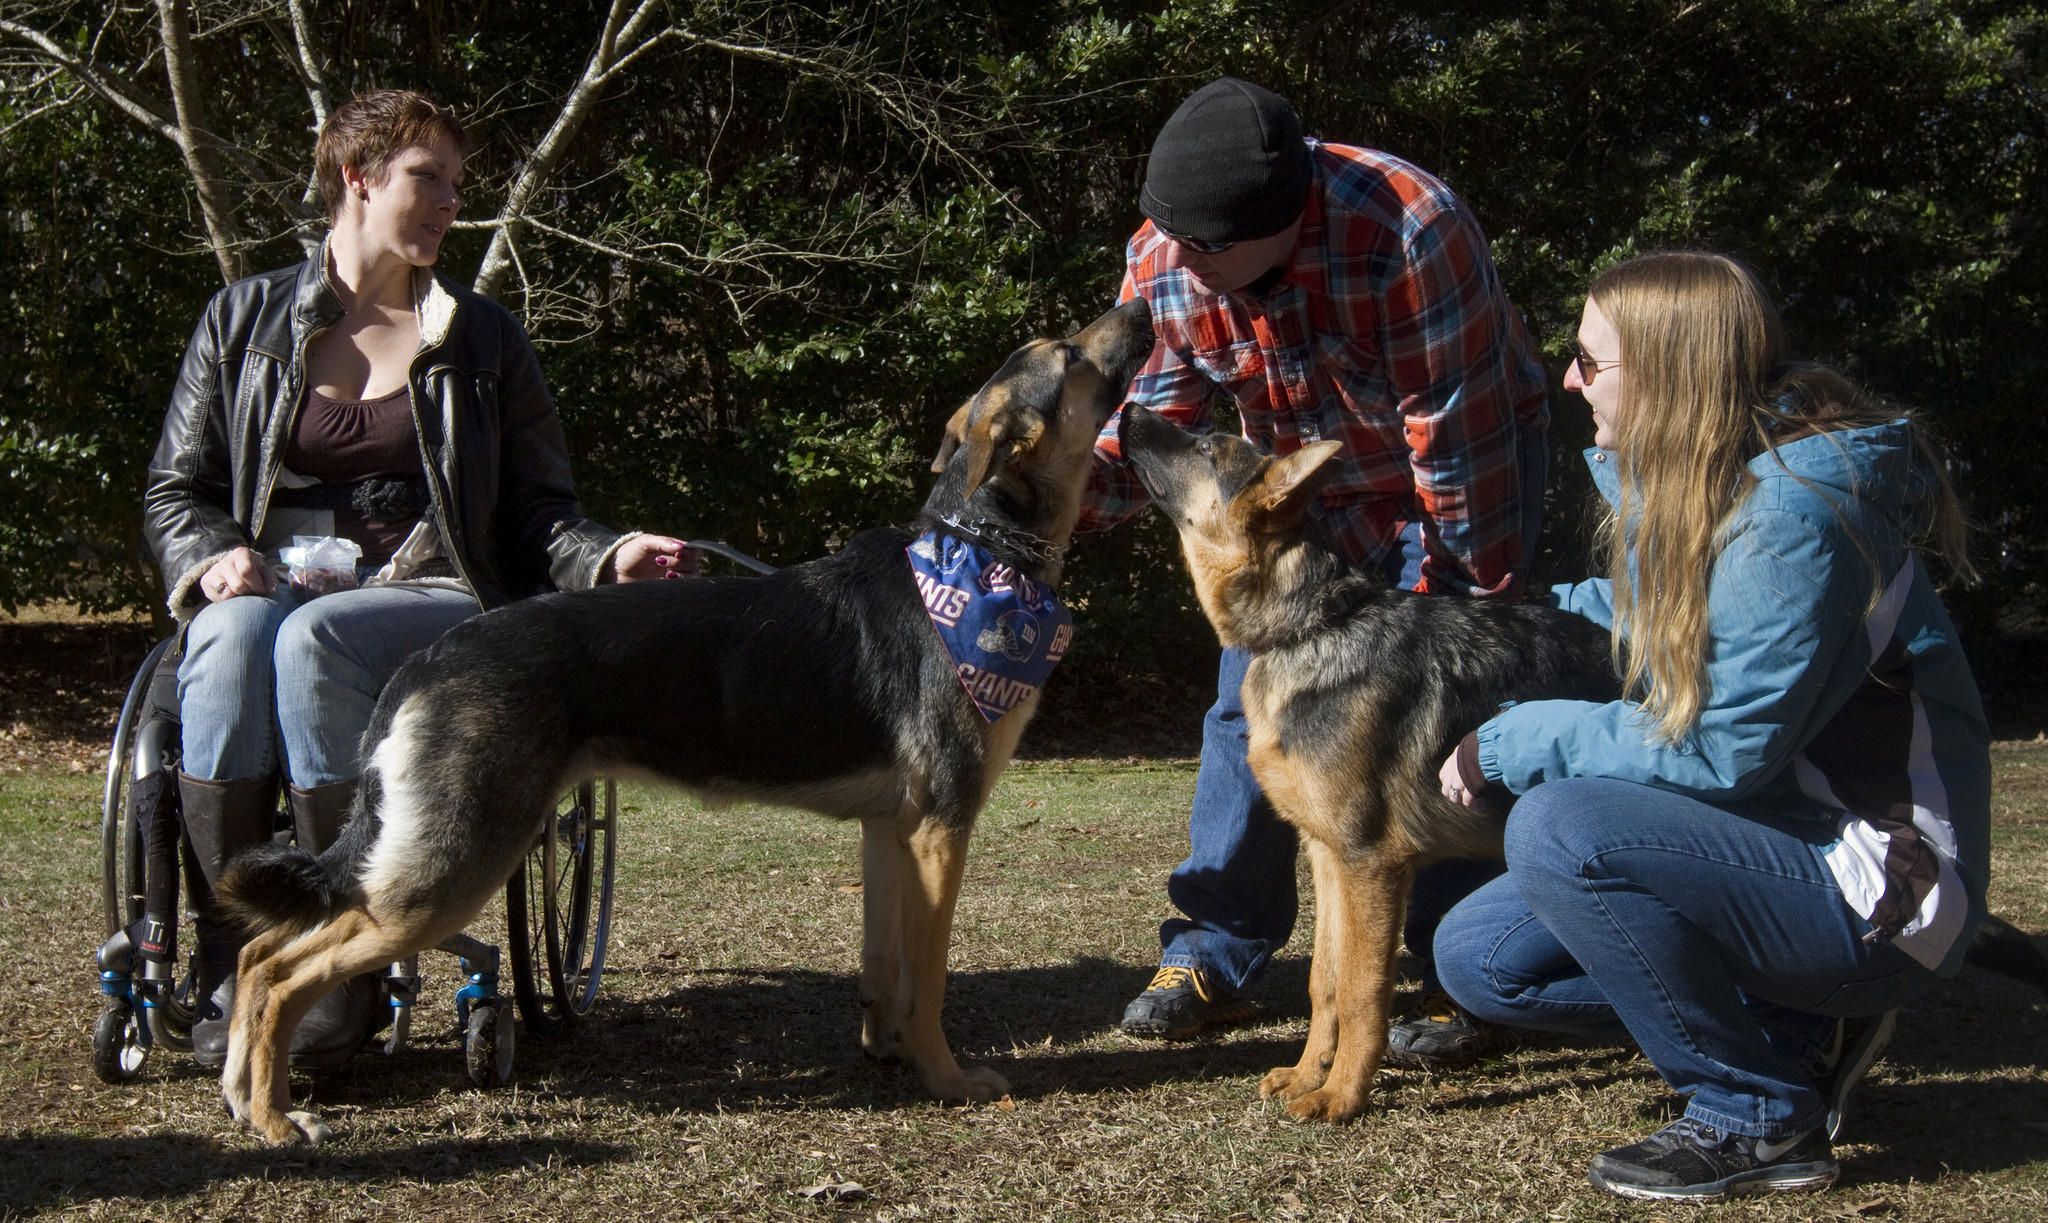 (From left) Laurie Wood, Joshua George and Olivia George watch as German Shepherds Squatch and Anubis meet each other at Citizens K9 Training and Agility in Chesapeake on Jan. 9.